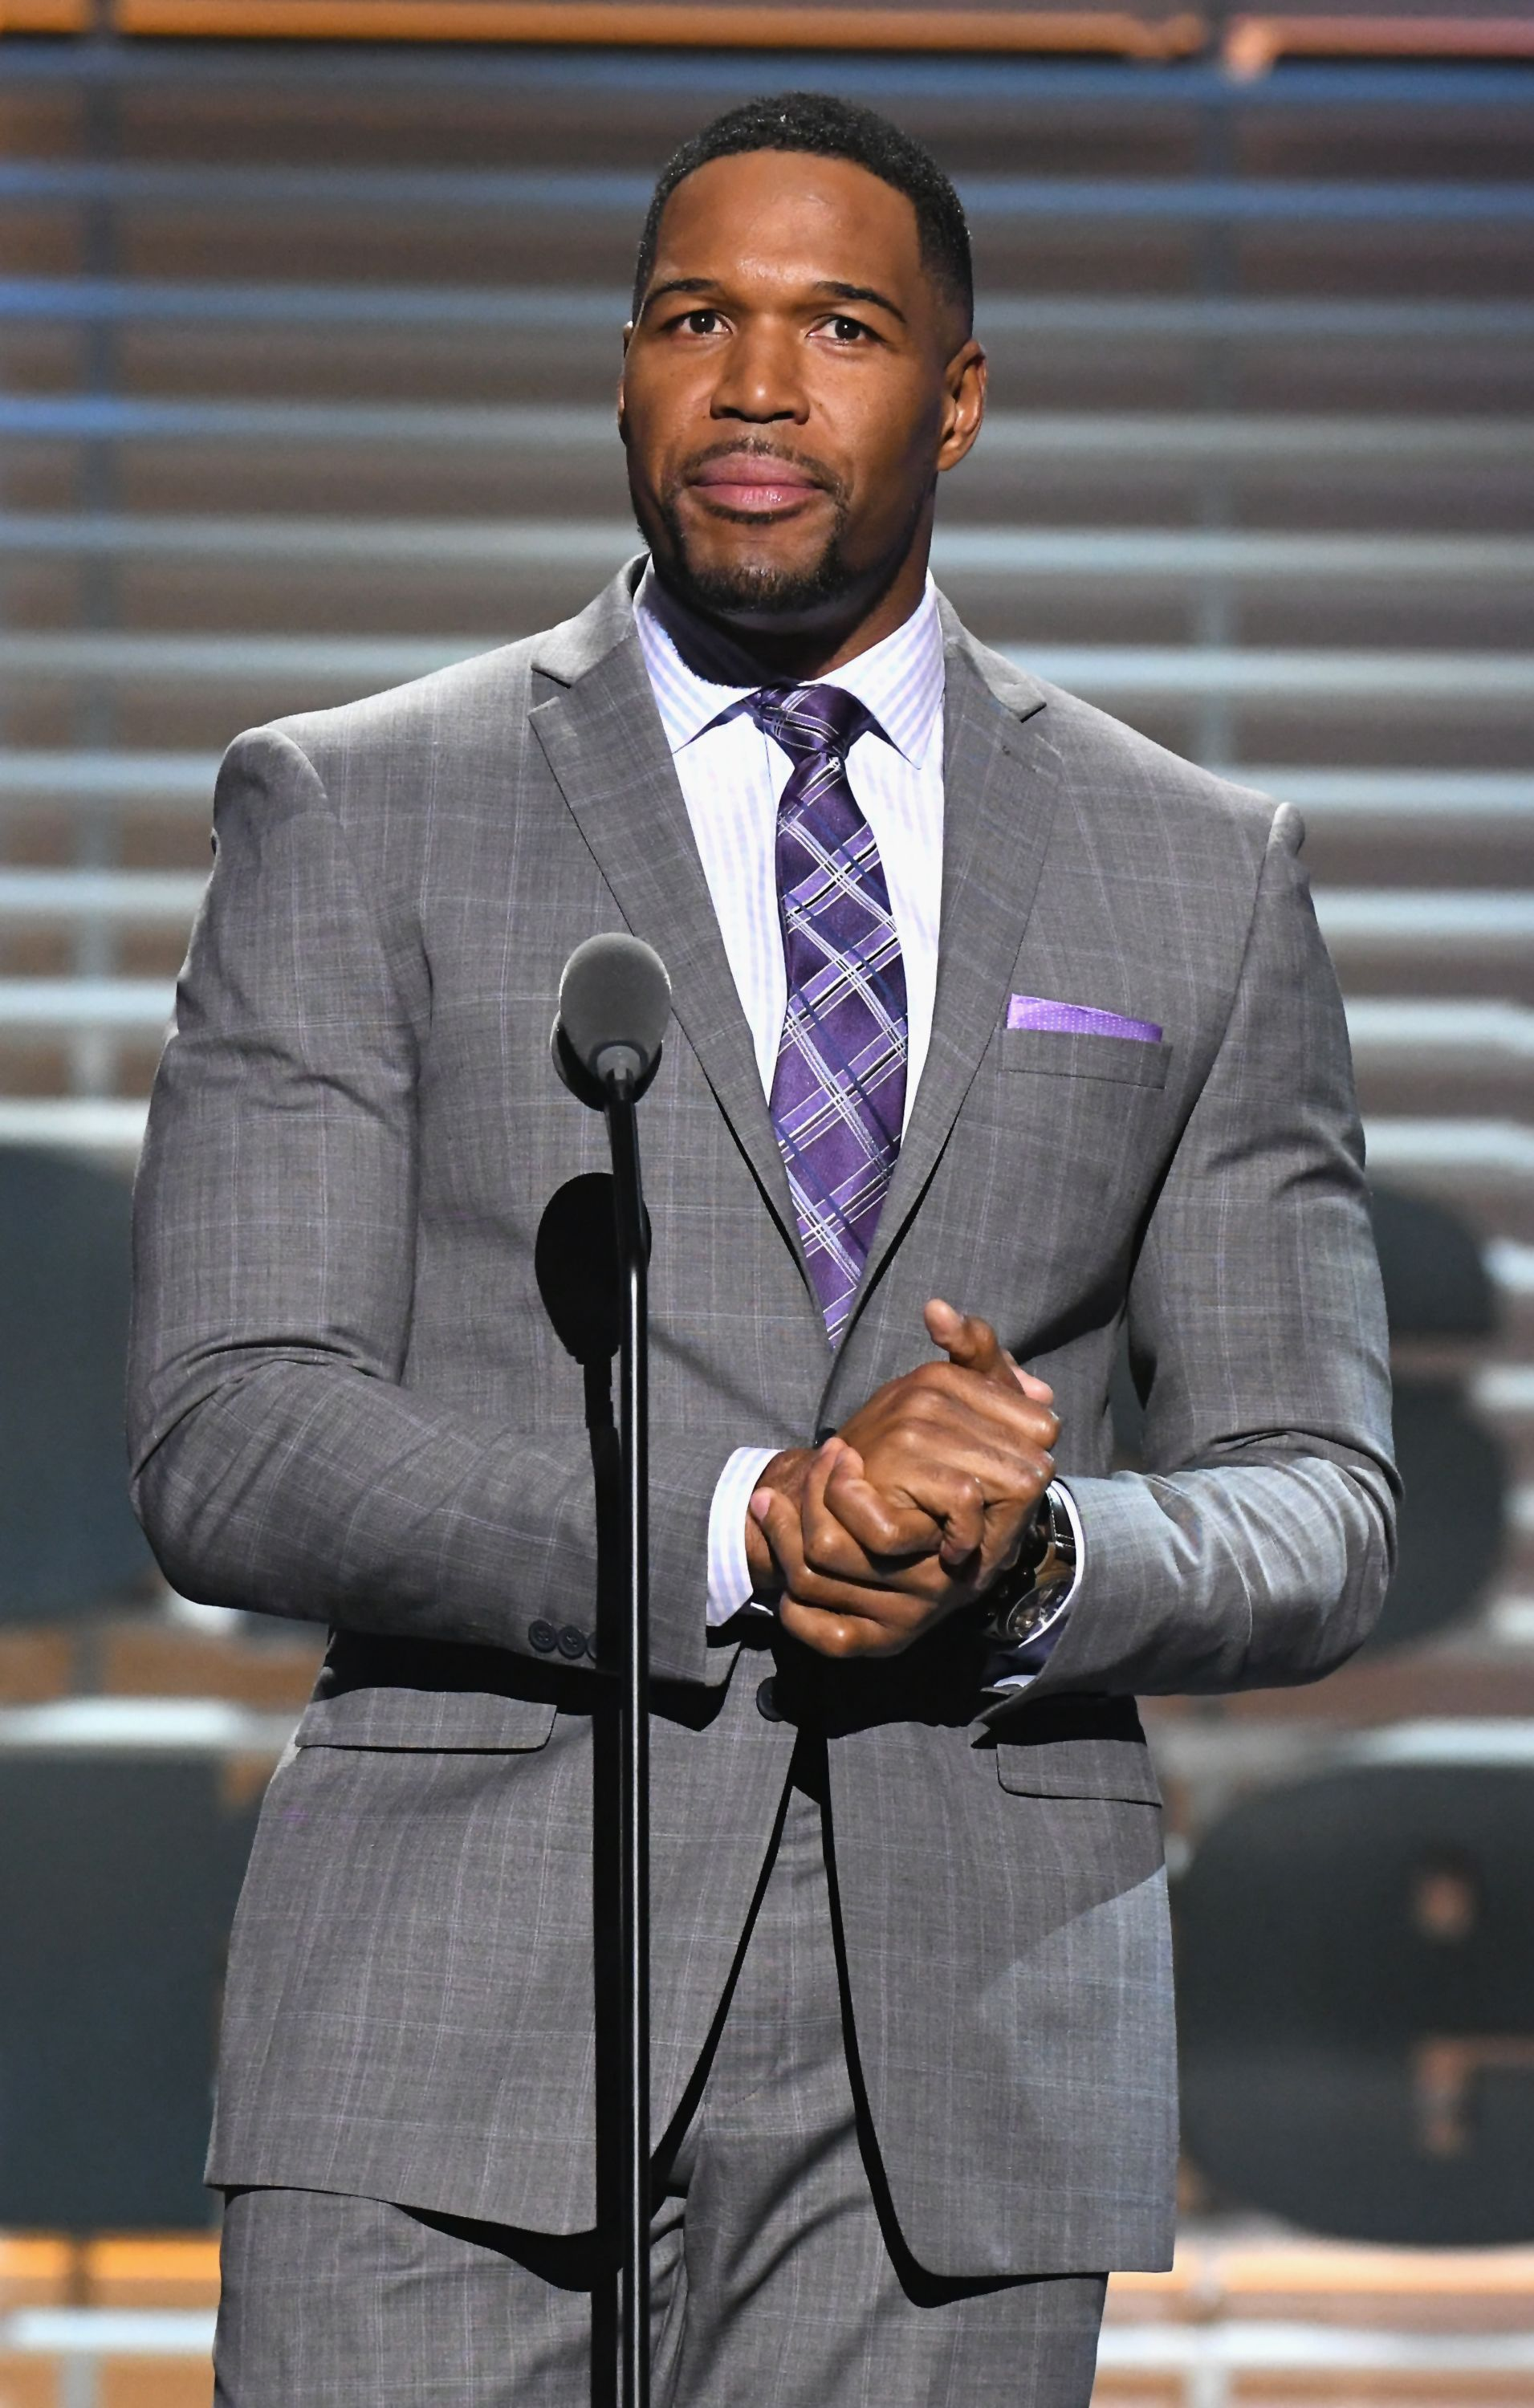 Michael Strahan at the Sports Illustrated 2017 Sportsperson of the Year Show on December 5, 2017  | Photo: Getty Images